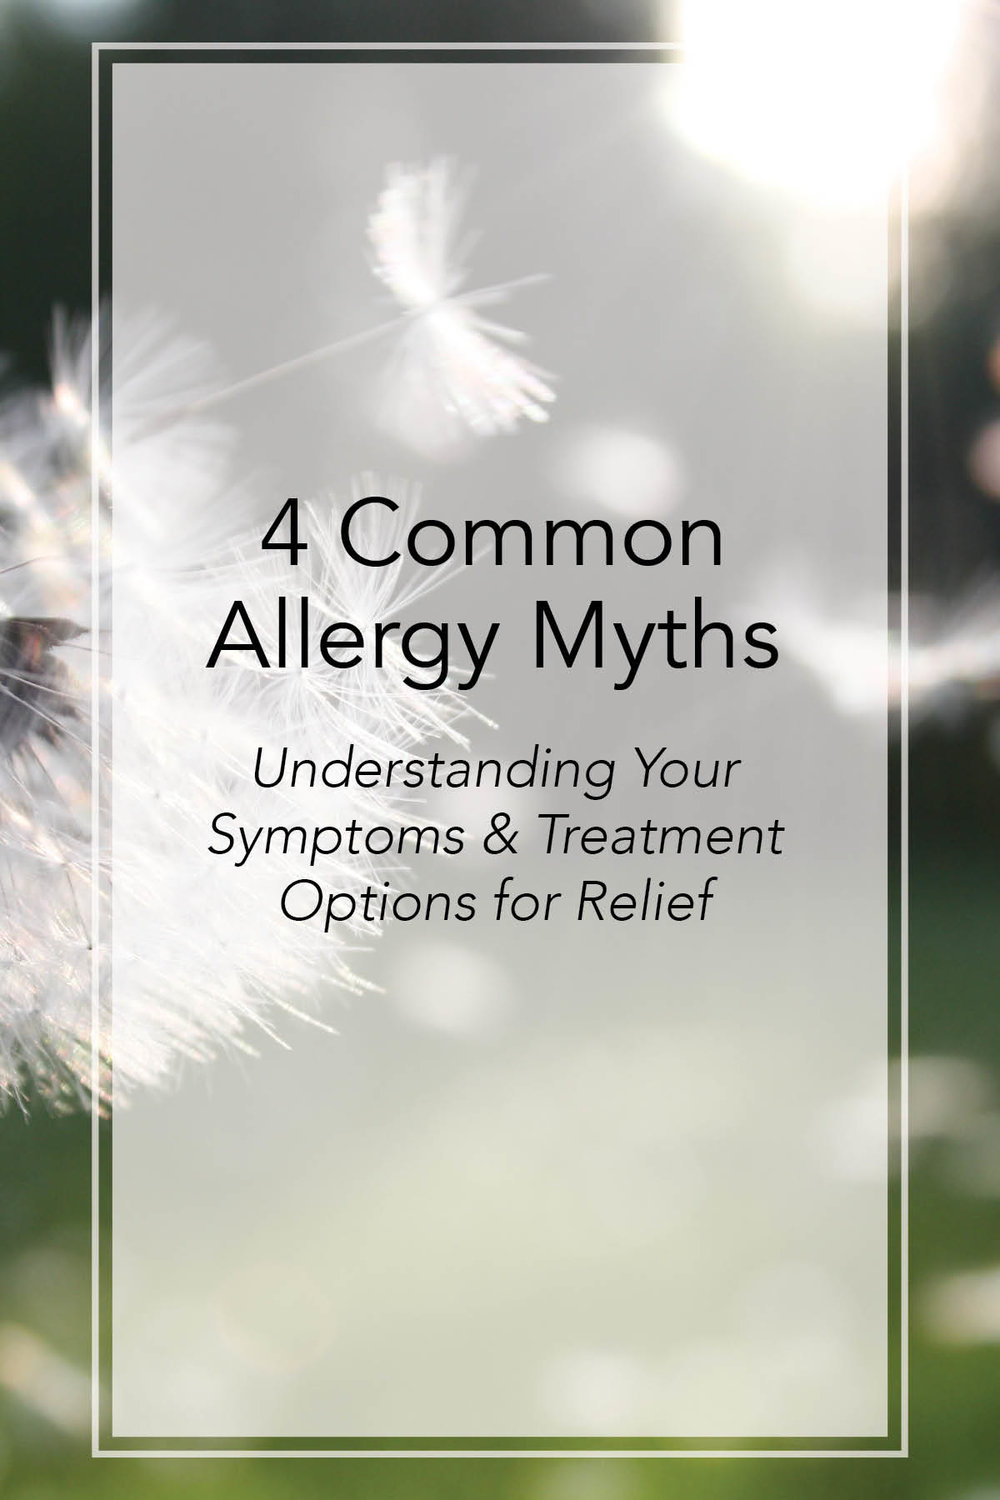 AIM Blog Post - 4 Common Allergy Myths, Symptoms and Available Treatments